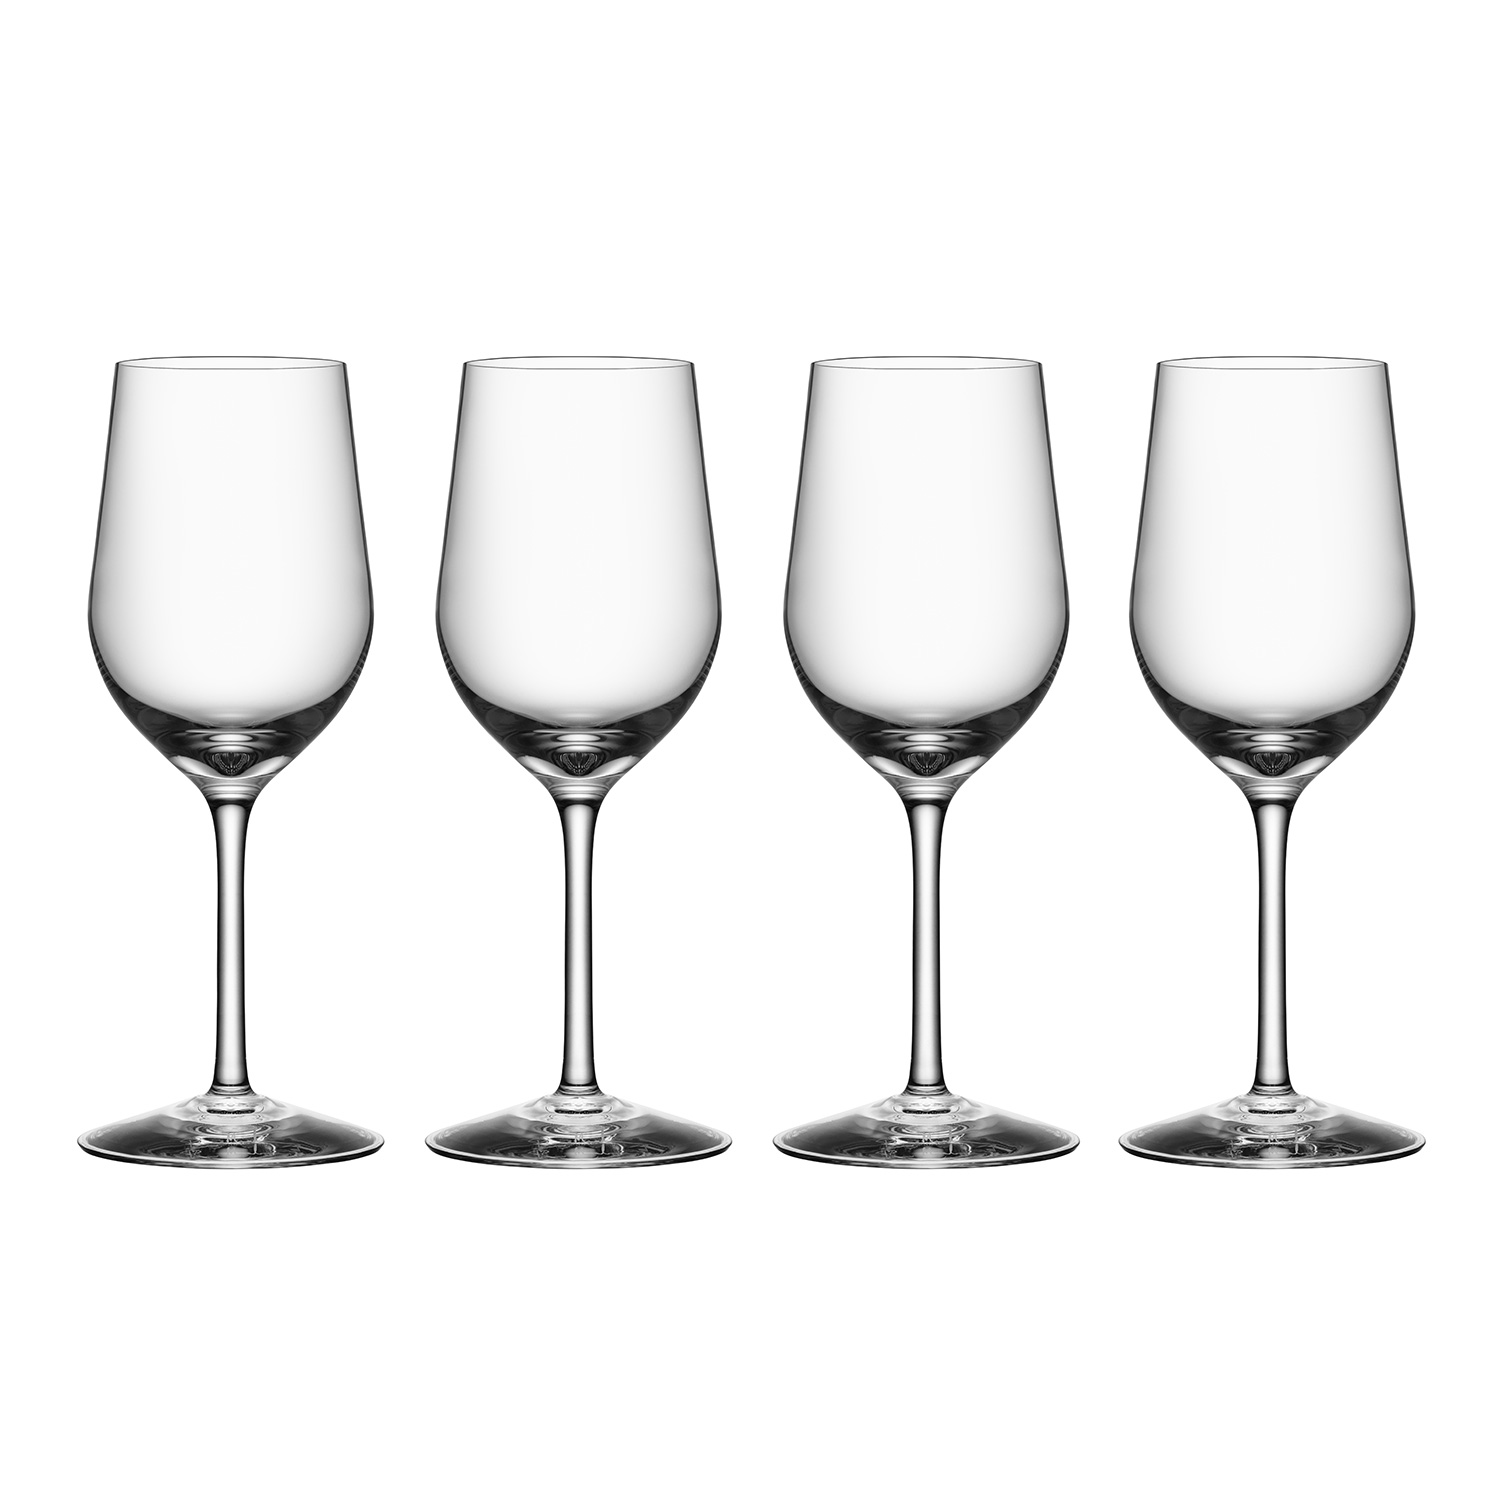 Morberg Collection White Wine Glass 34 Cl 4 Pcs Orrefors Royaldesign